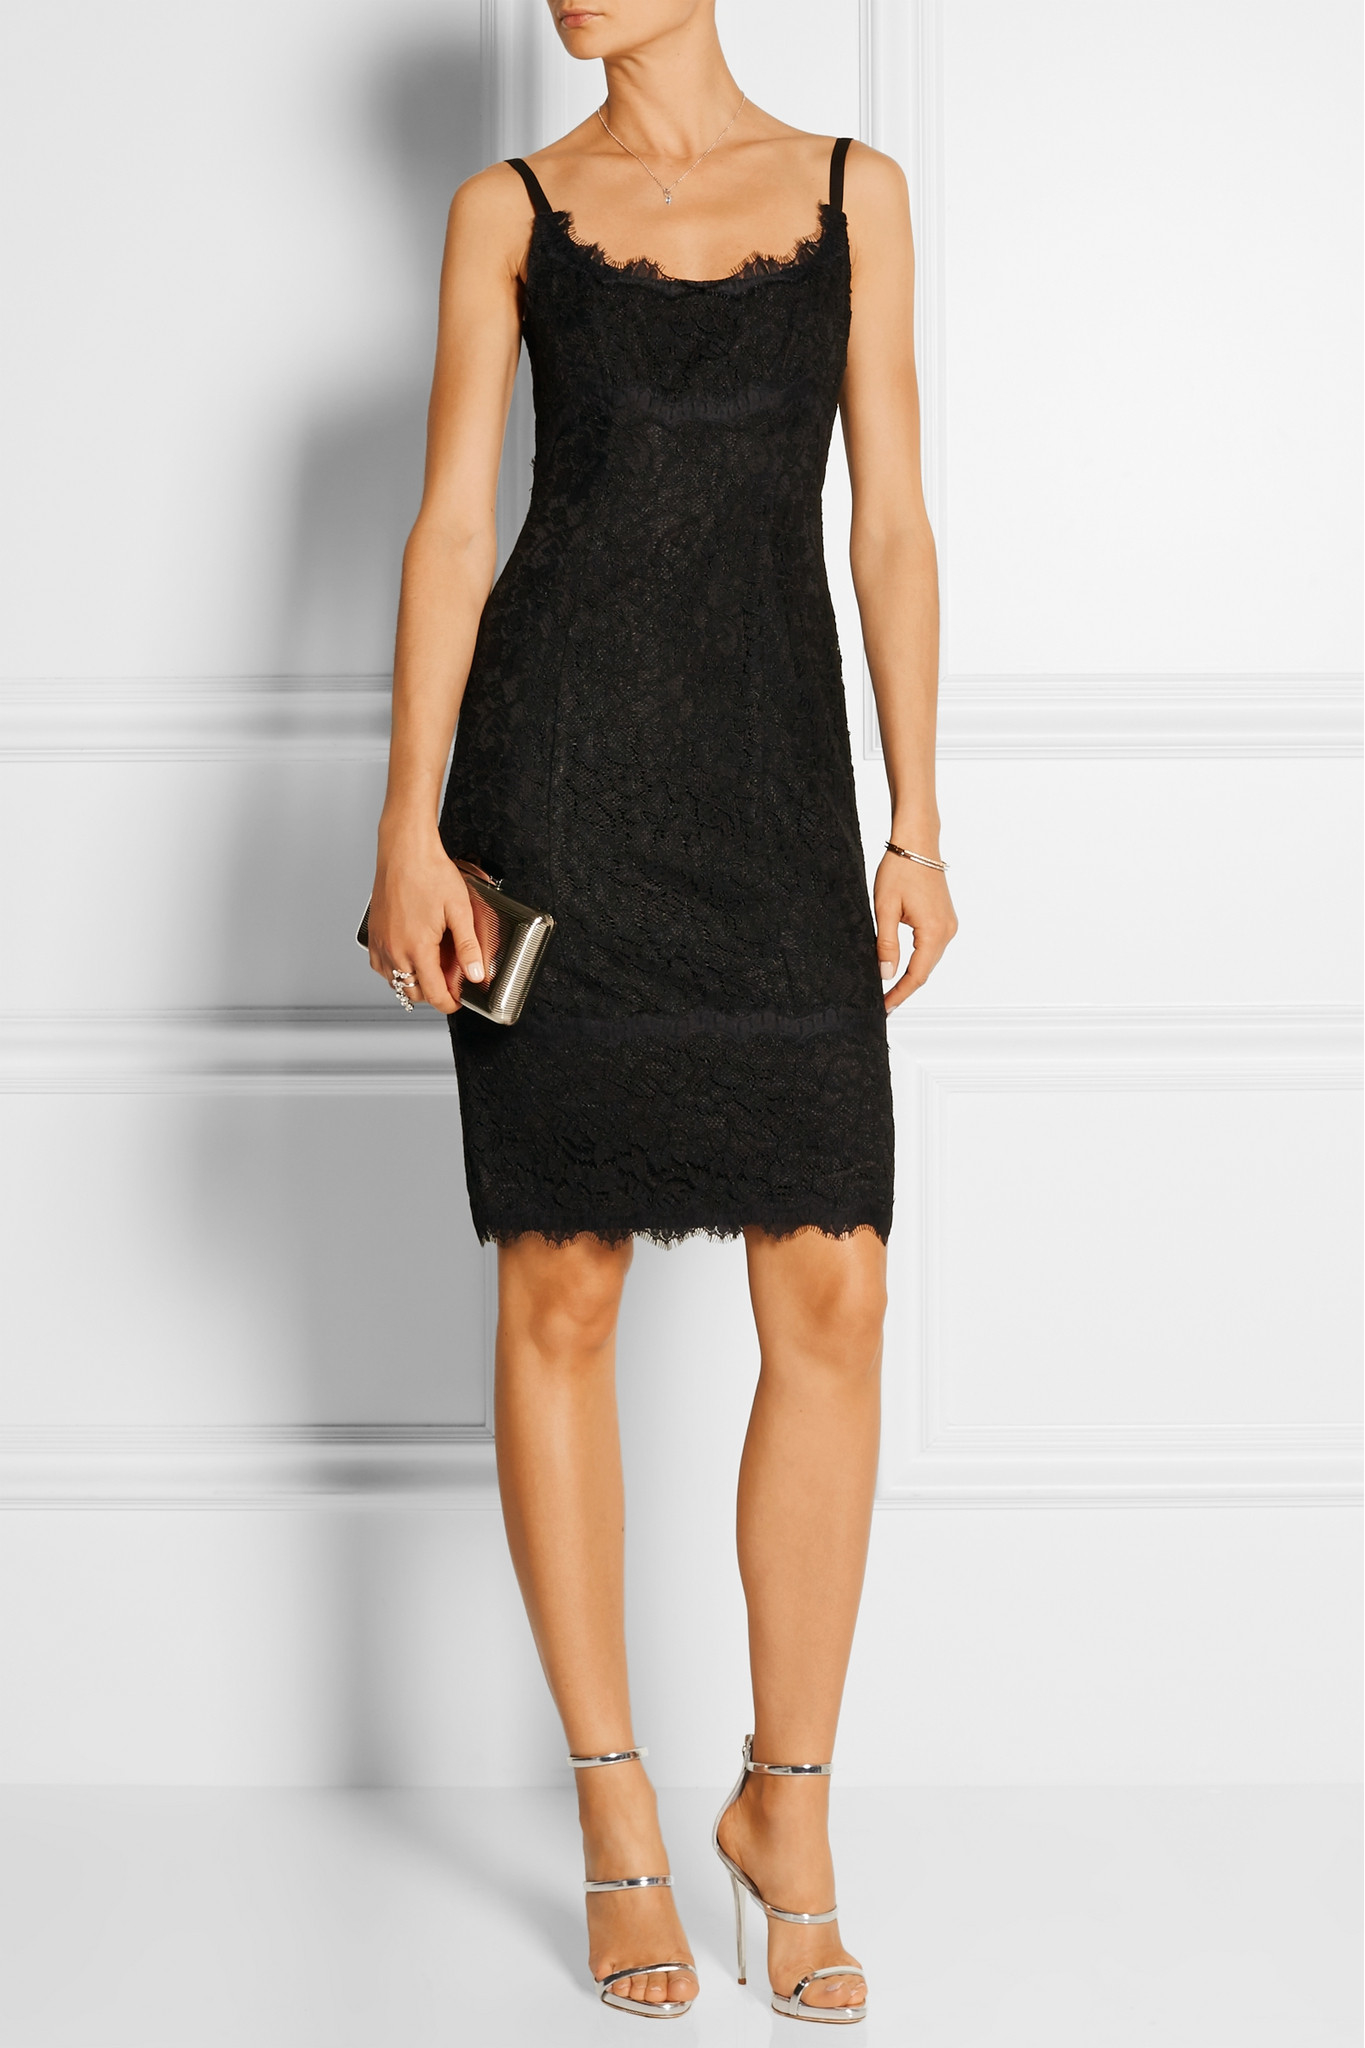 Diane von Furstenberg Olivia Lace Dress in Black - Lyst